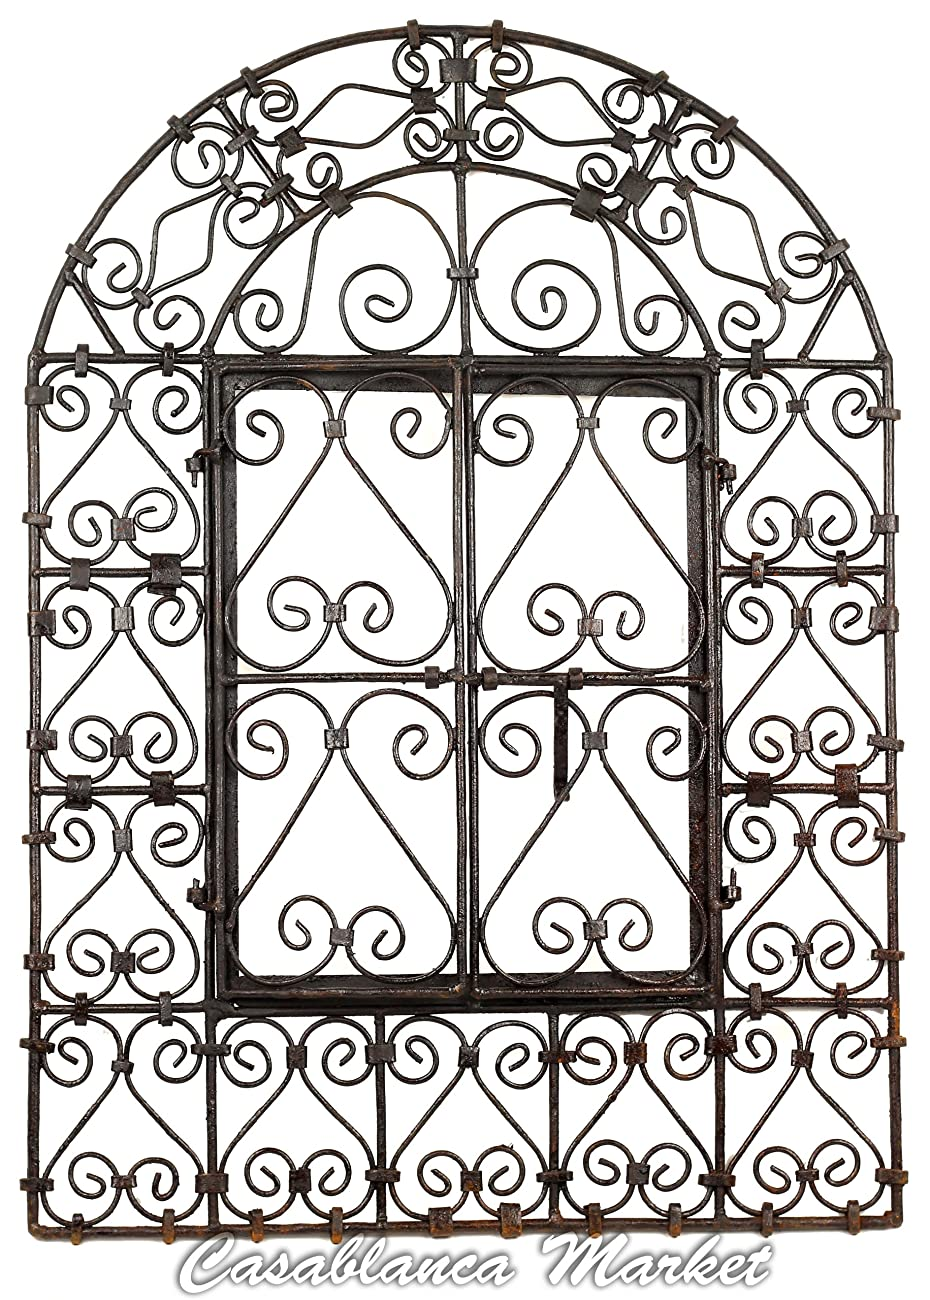 The Wrought Iron Window with Doors 0